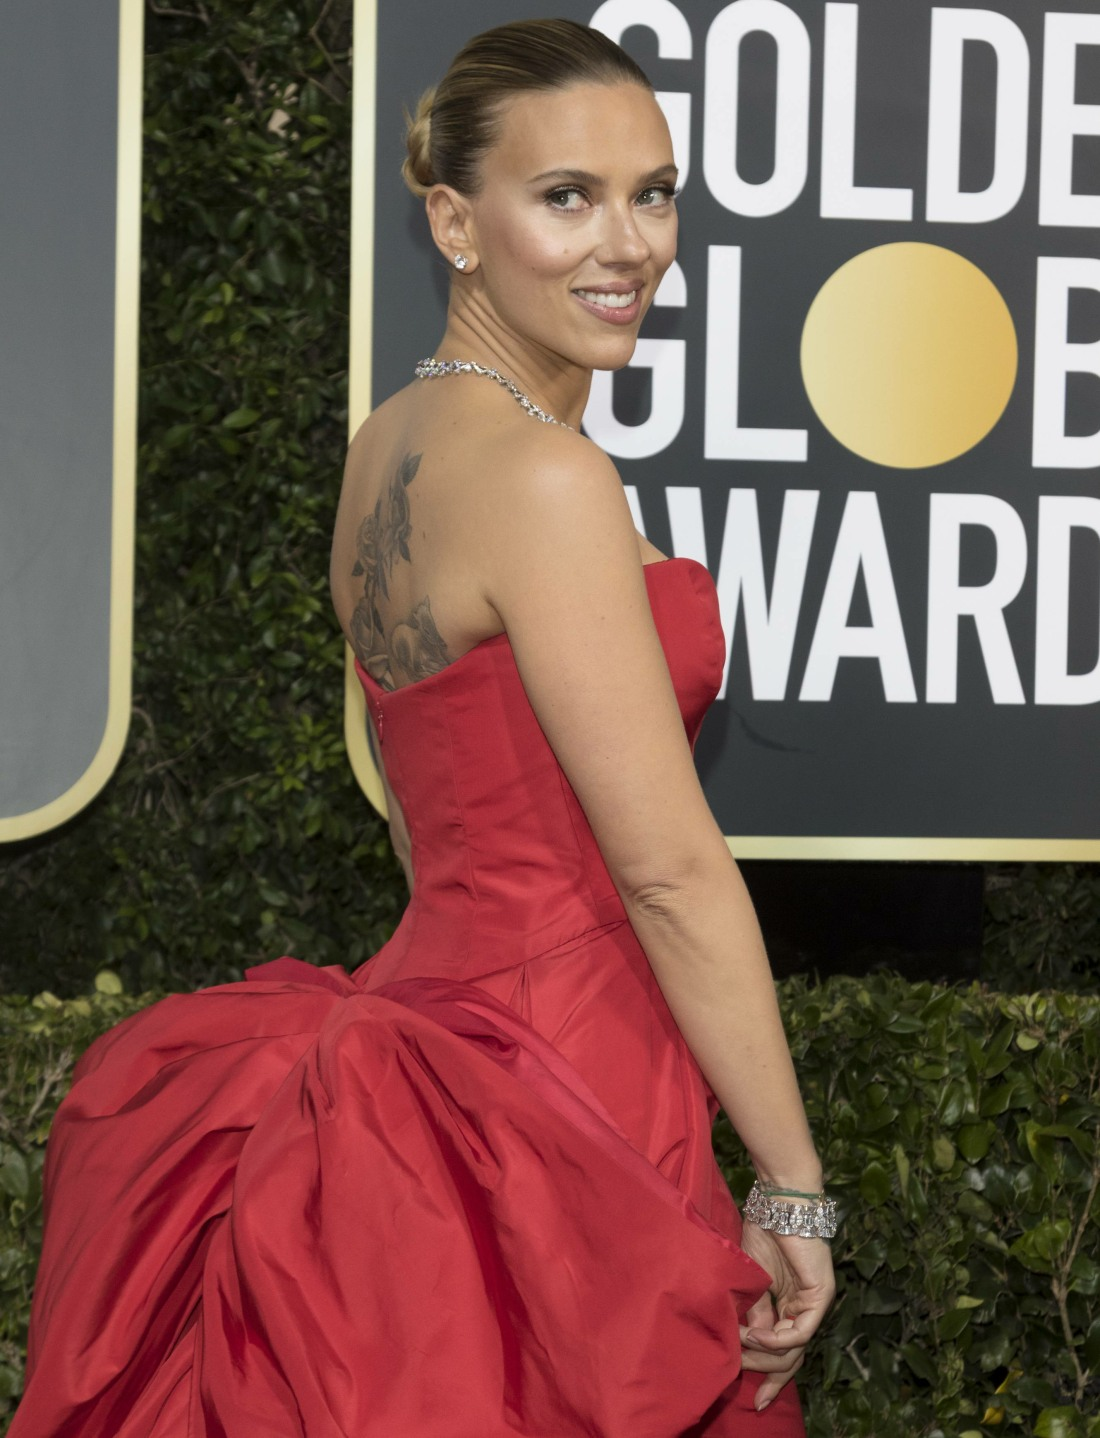 Scarlett Johansson attends the 77th Annual Golden Globe Awards, Golden Globes, at Hotel Beverly Hilton in Beverly Hills, Los Angeles, USA, on 05 January 2020. | usage worldwide